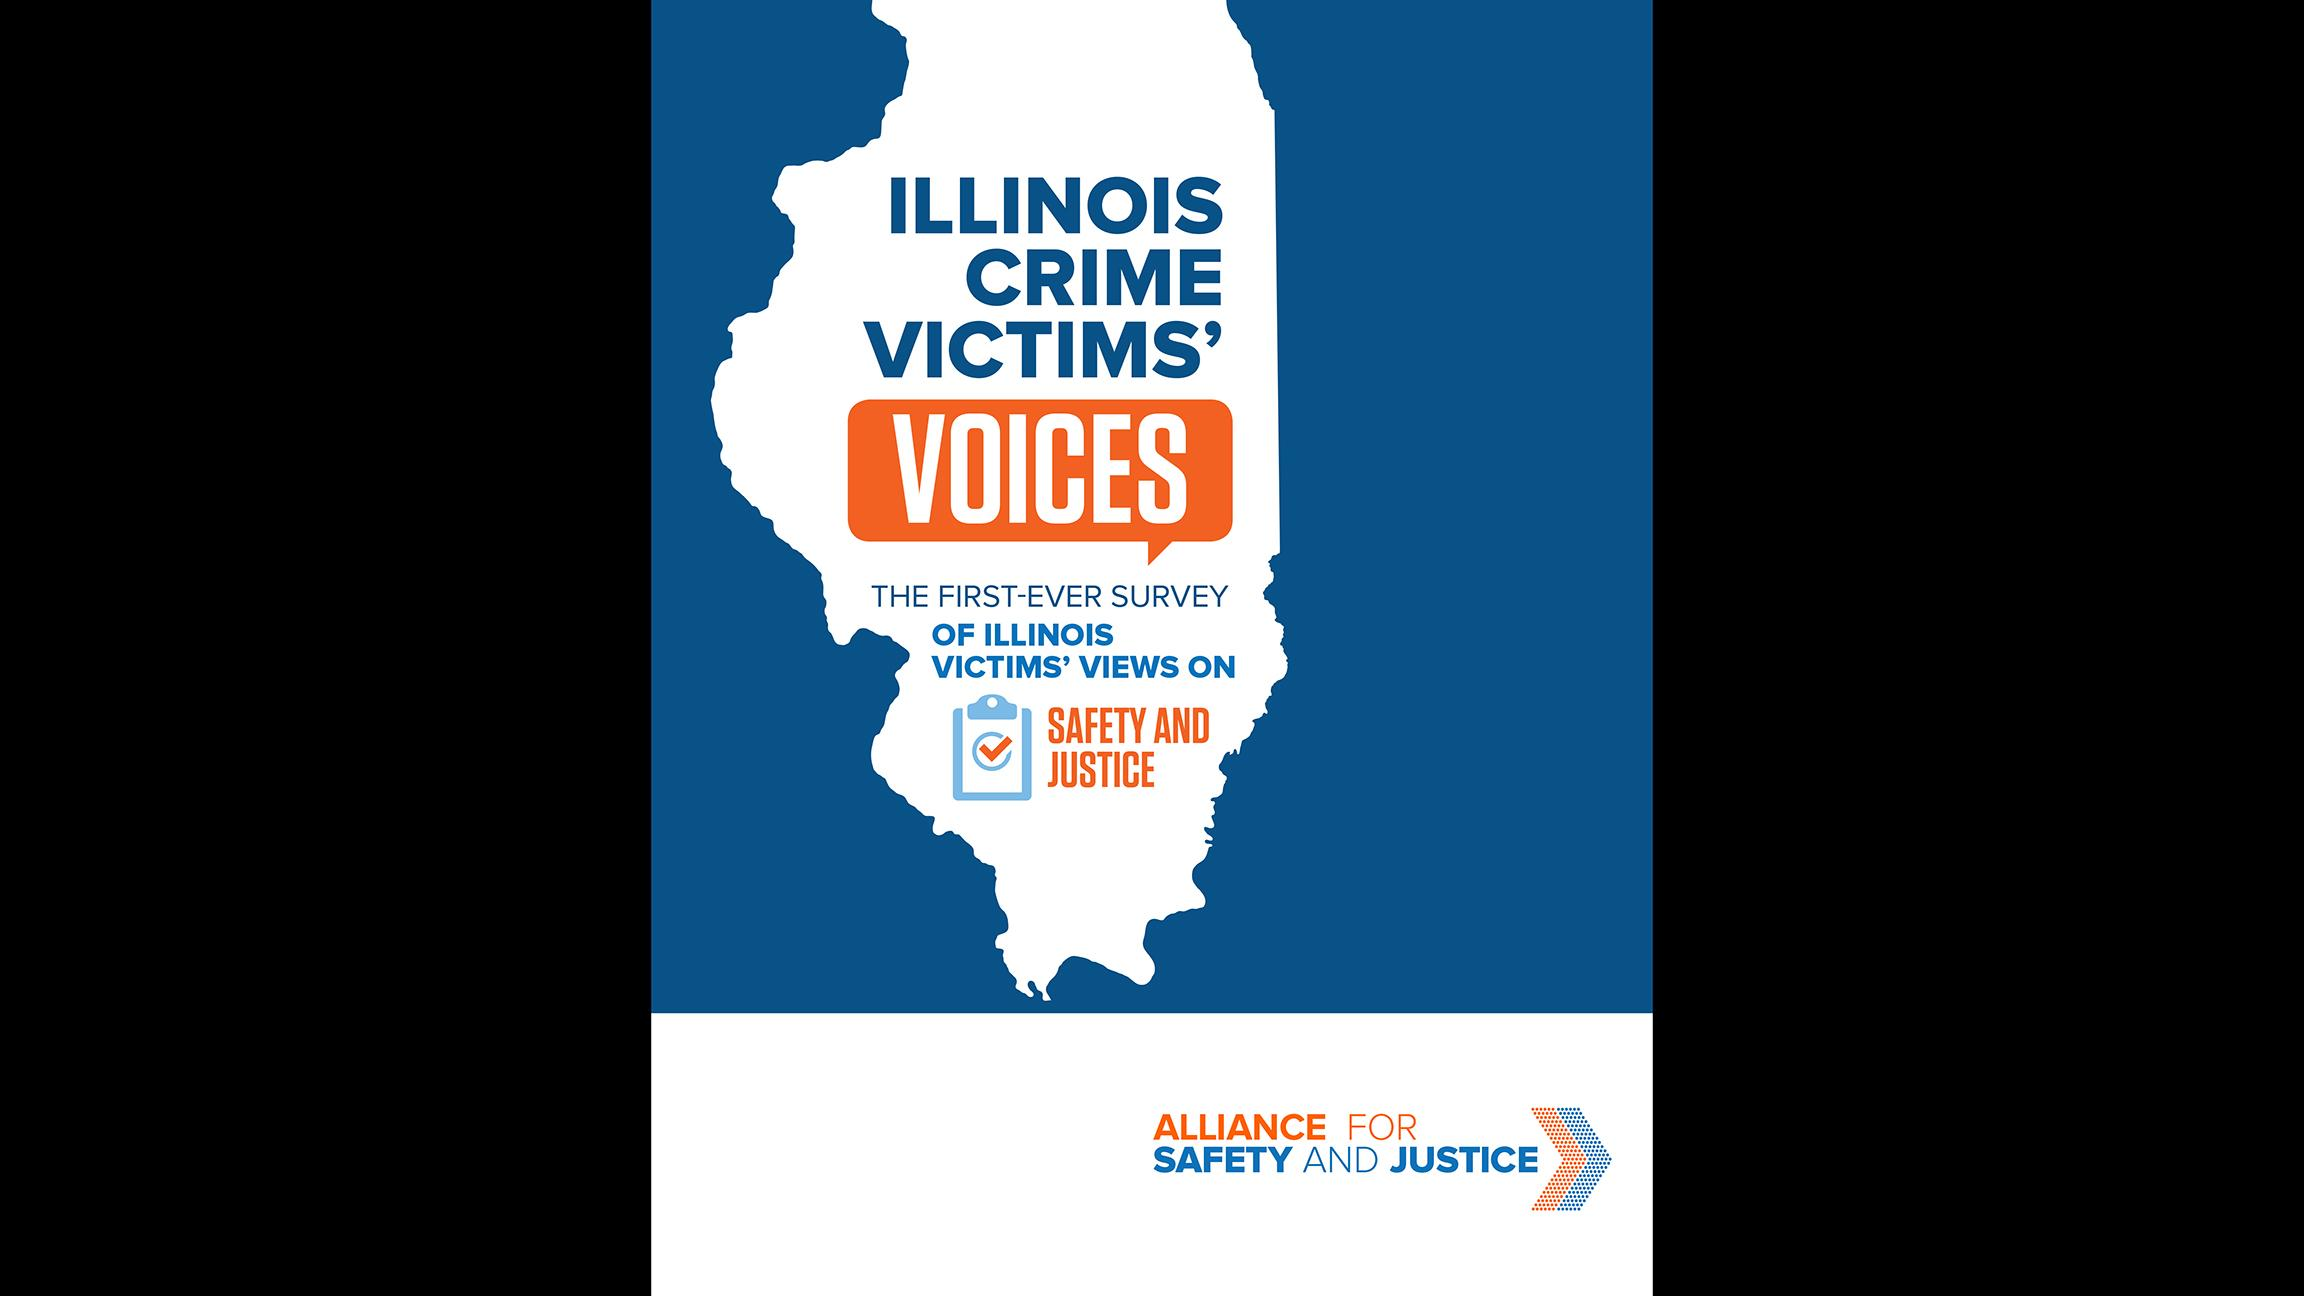 Document: Read the Alliance for Safety and Justice report